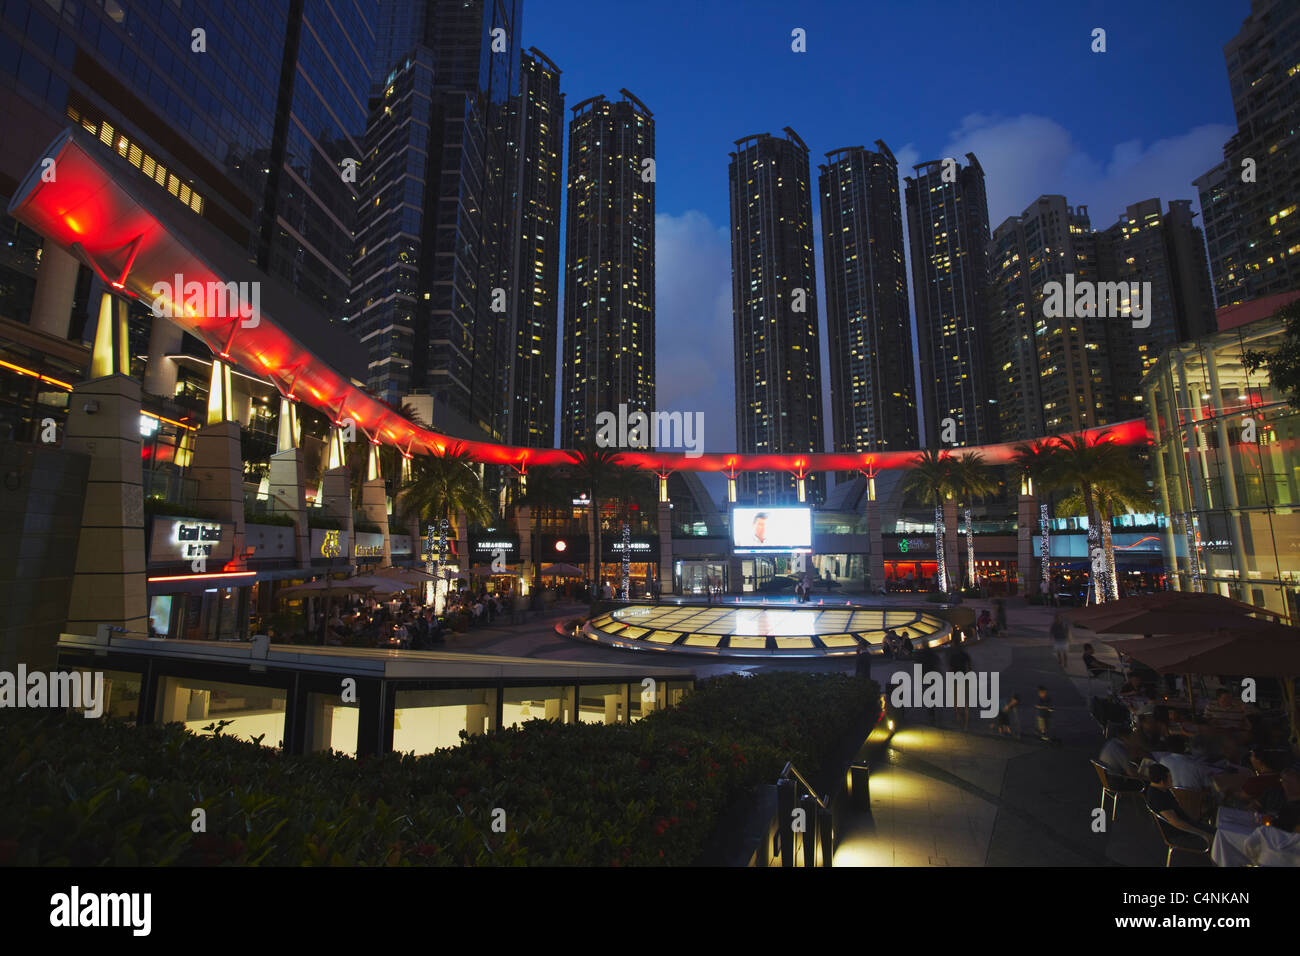 Restaurants in Civic Square, Elemente Mall, West Kowloon, Hong Kong, China Stockbild